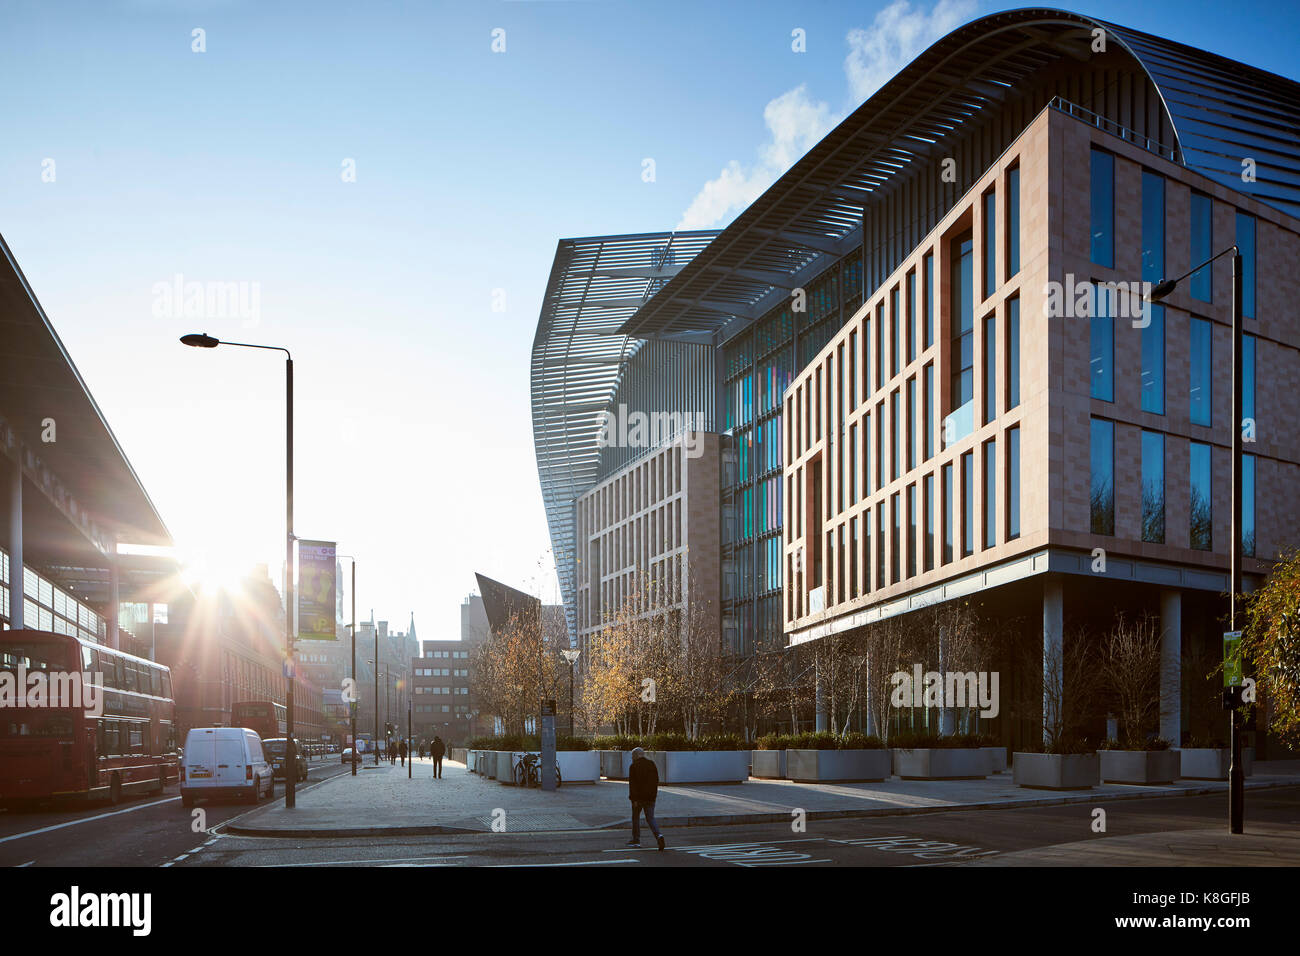 Angled view of front elevation into sun. Francis Crick Institute, London, United Kingdom. Architect: HOK International - Stock Image